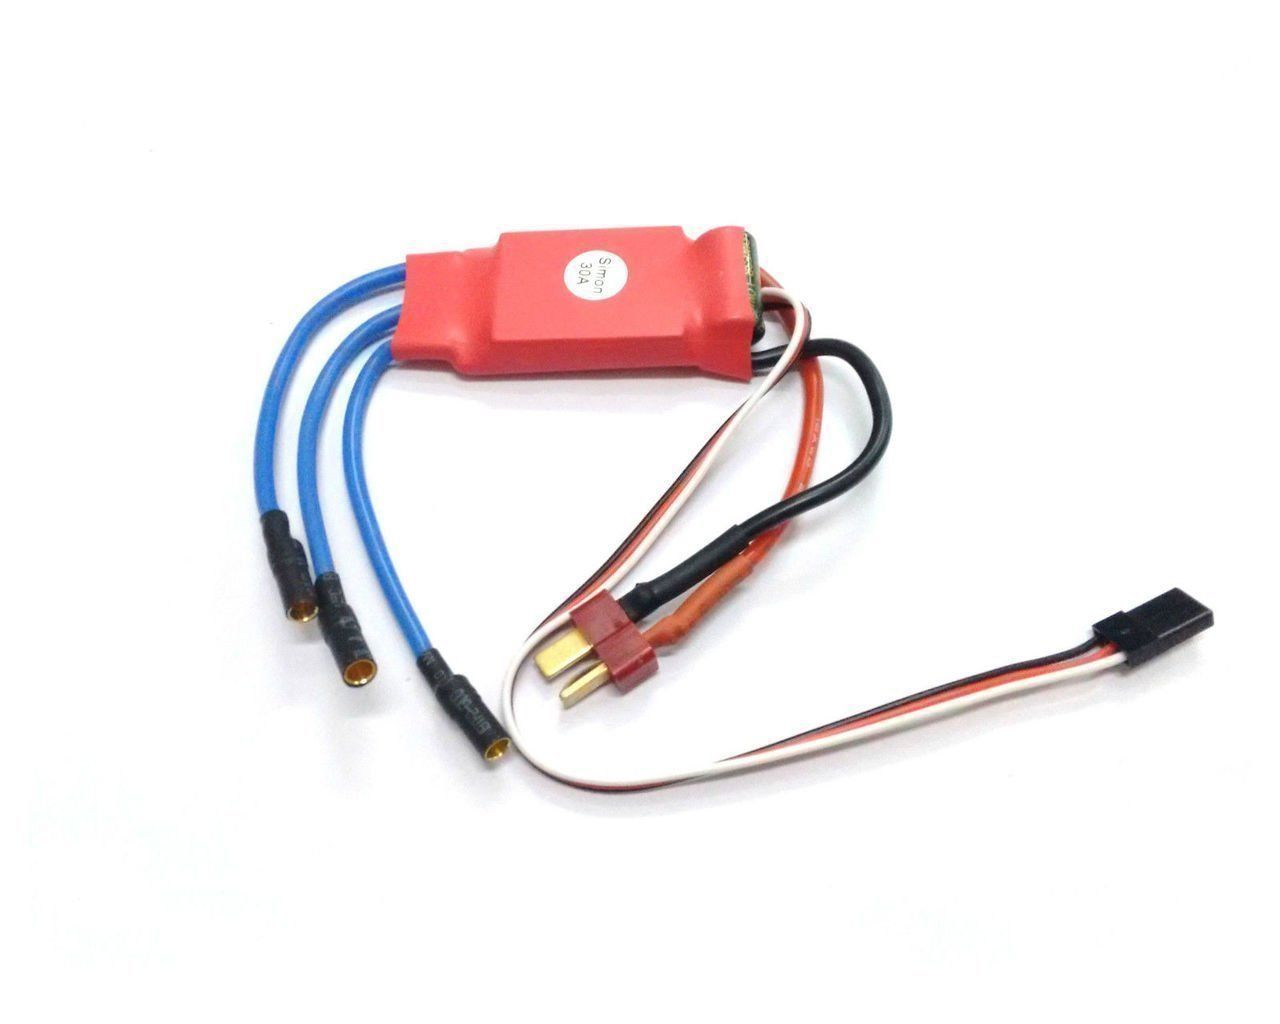 Astonishing Speed Contoller Esc Archives Robu In Indian Online Store Rc Wiring Digital Resources Funapmognl